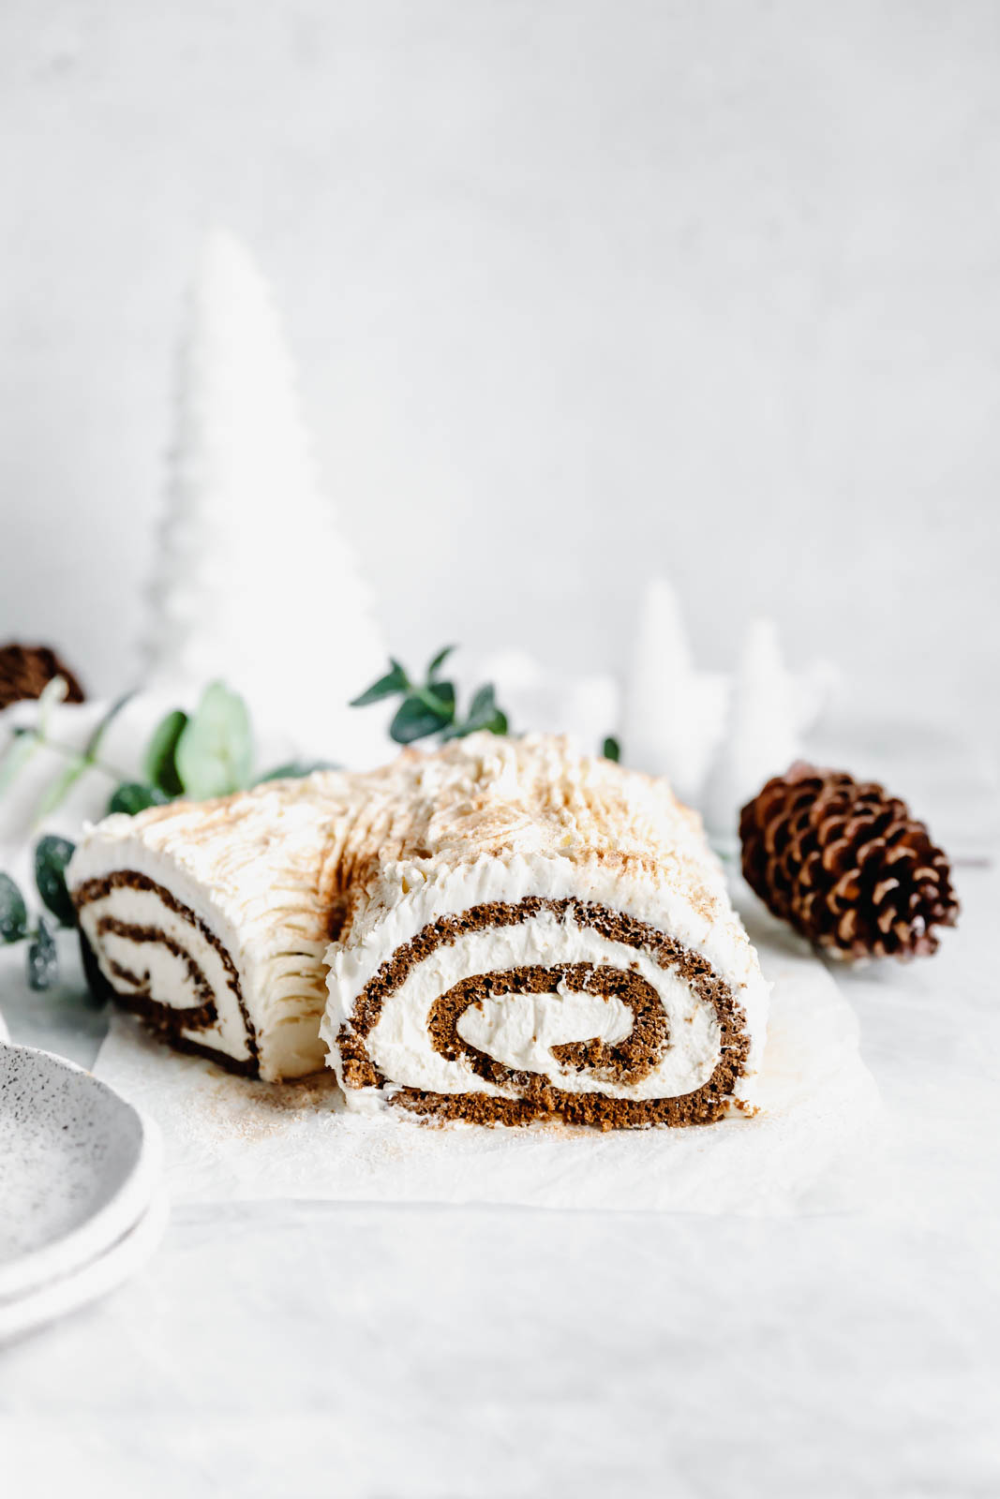 This festive White Chocolate Gingerbread Yule Log is a